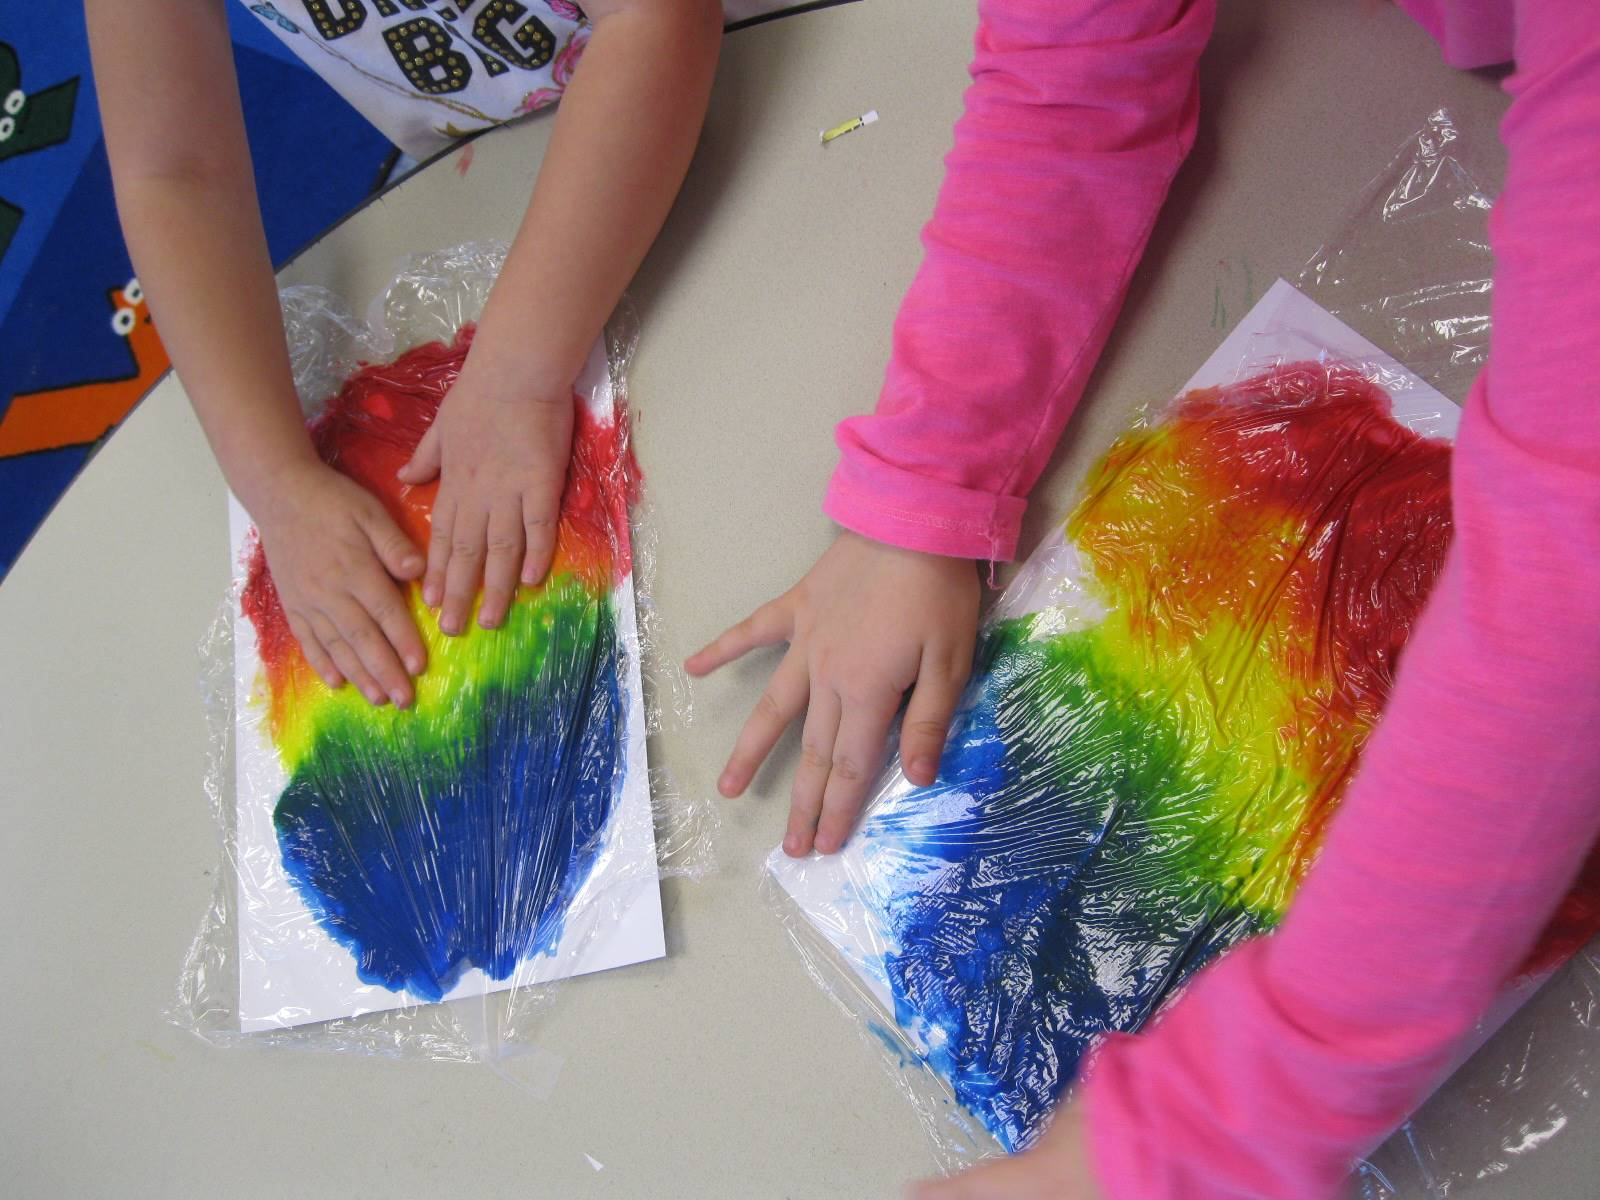 Student hands show how to spread paint.